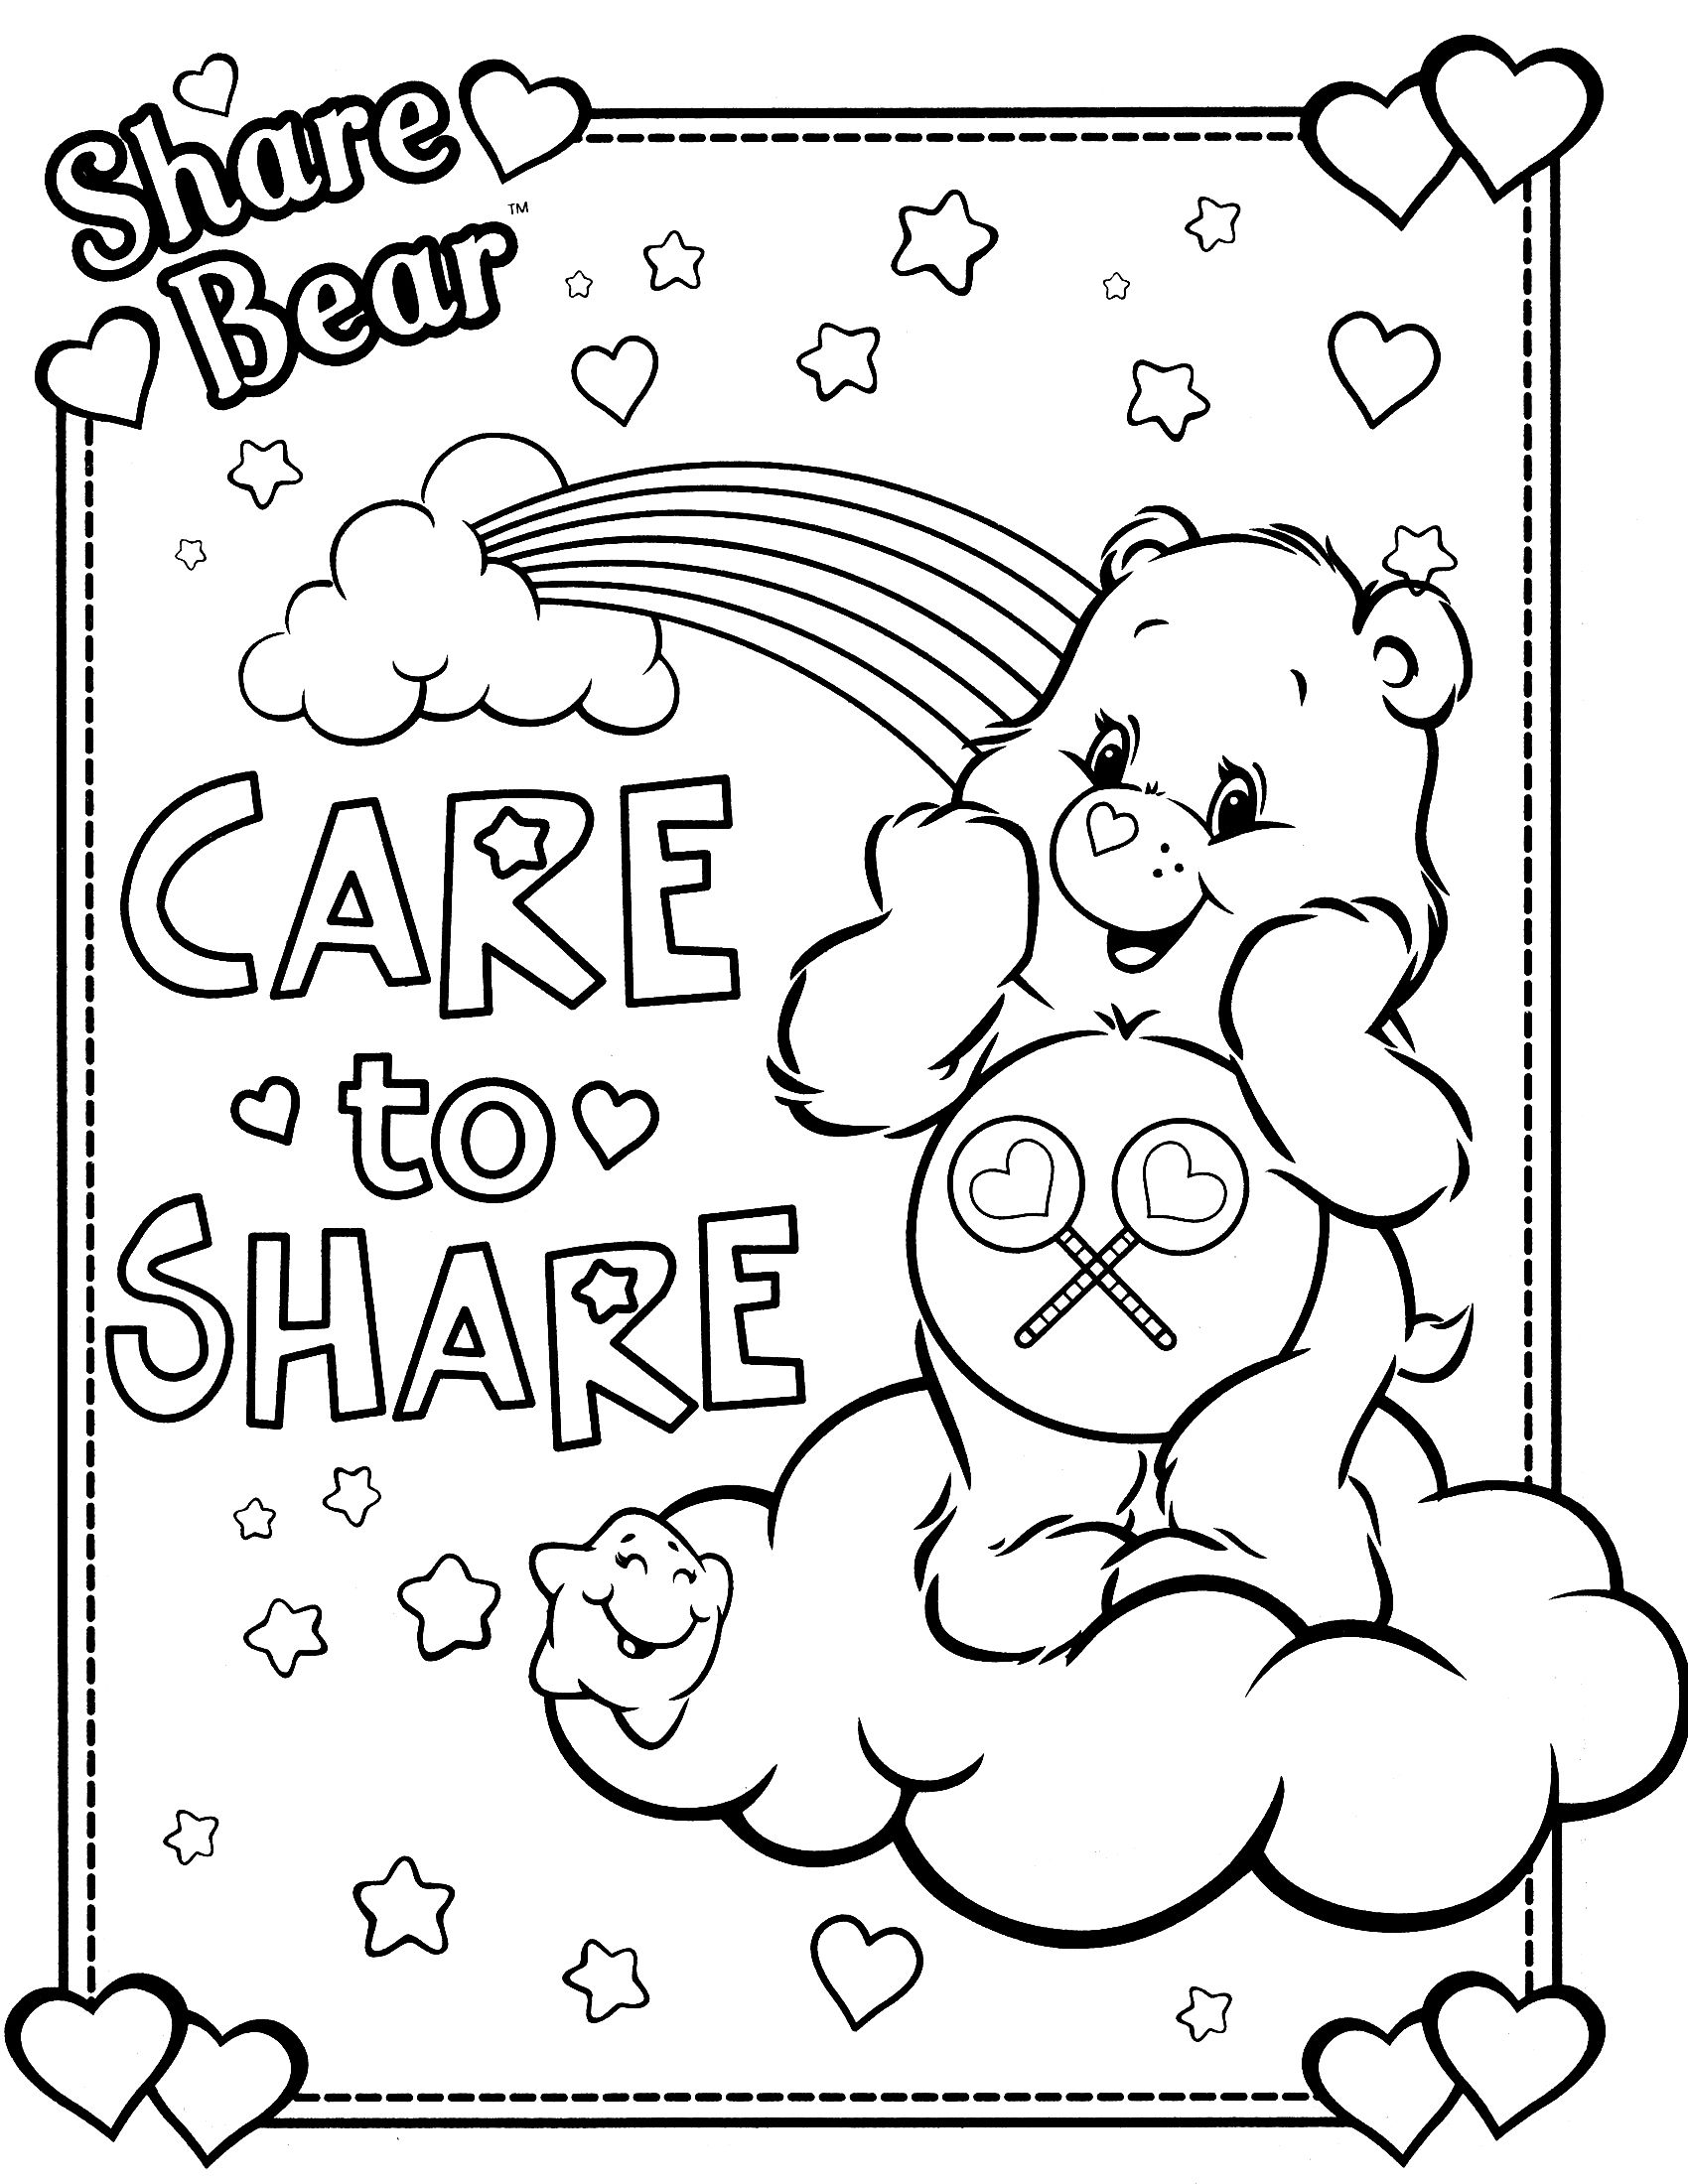 Book care coloring sheet - Care Bears Coloring Pages Care Bears Coloring Page 11